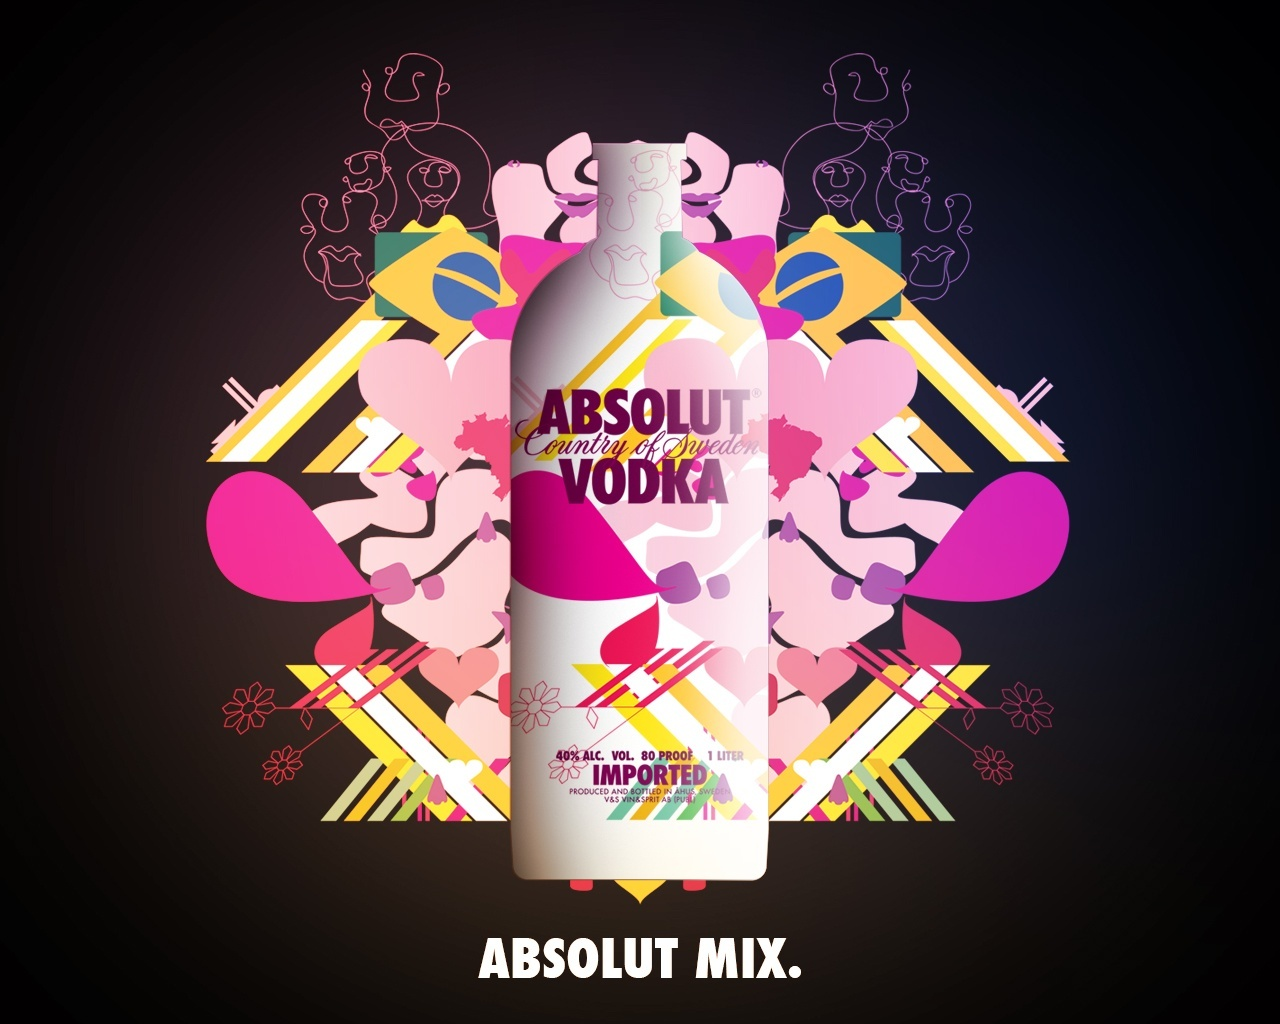 http://4.bp.blogspot.com/-OFl-jyFmpqc/TtzKlmxGx0I/AAAAAAAAByw/uS51sALIMCc/s1600/absolut+wallpaper-girzl.blogspot.com-absolut_vodka_mix_1280x1024_wallpaper.jpg